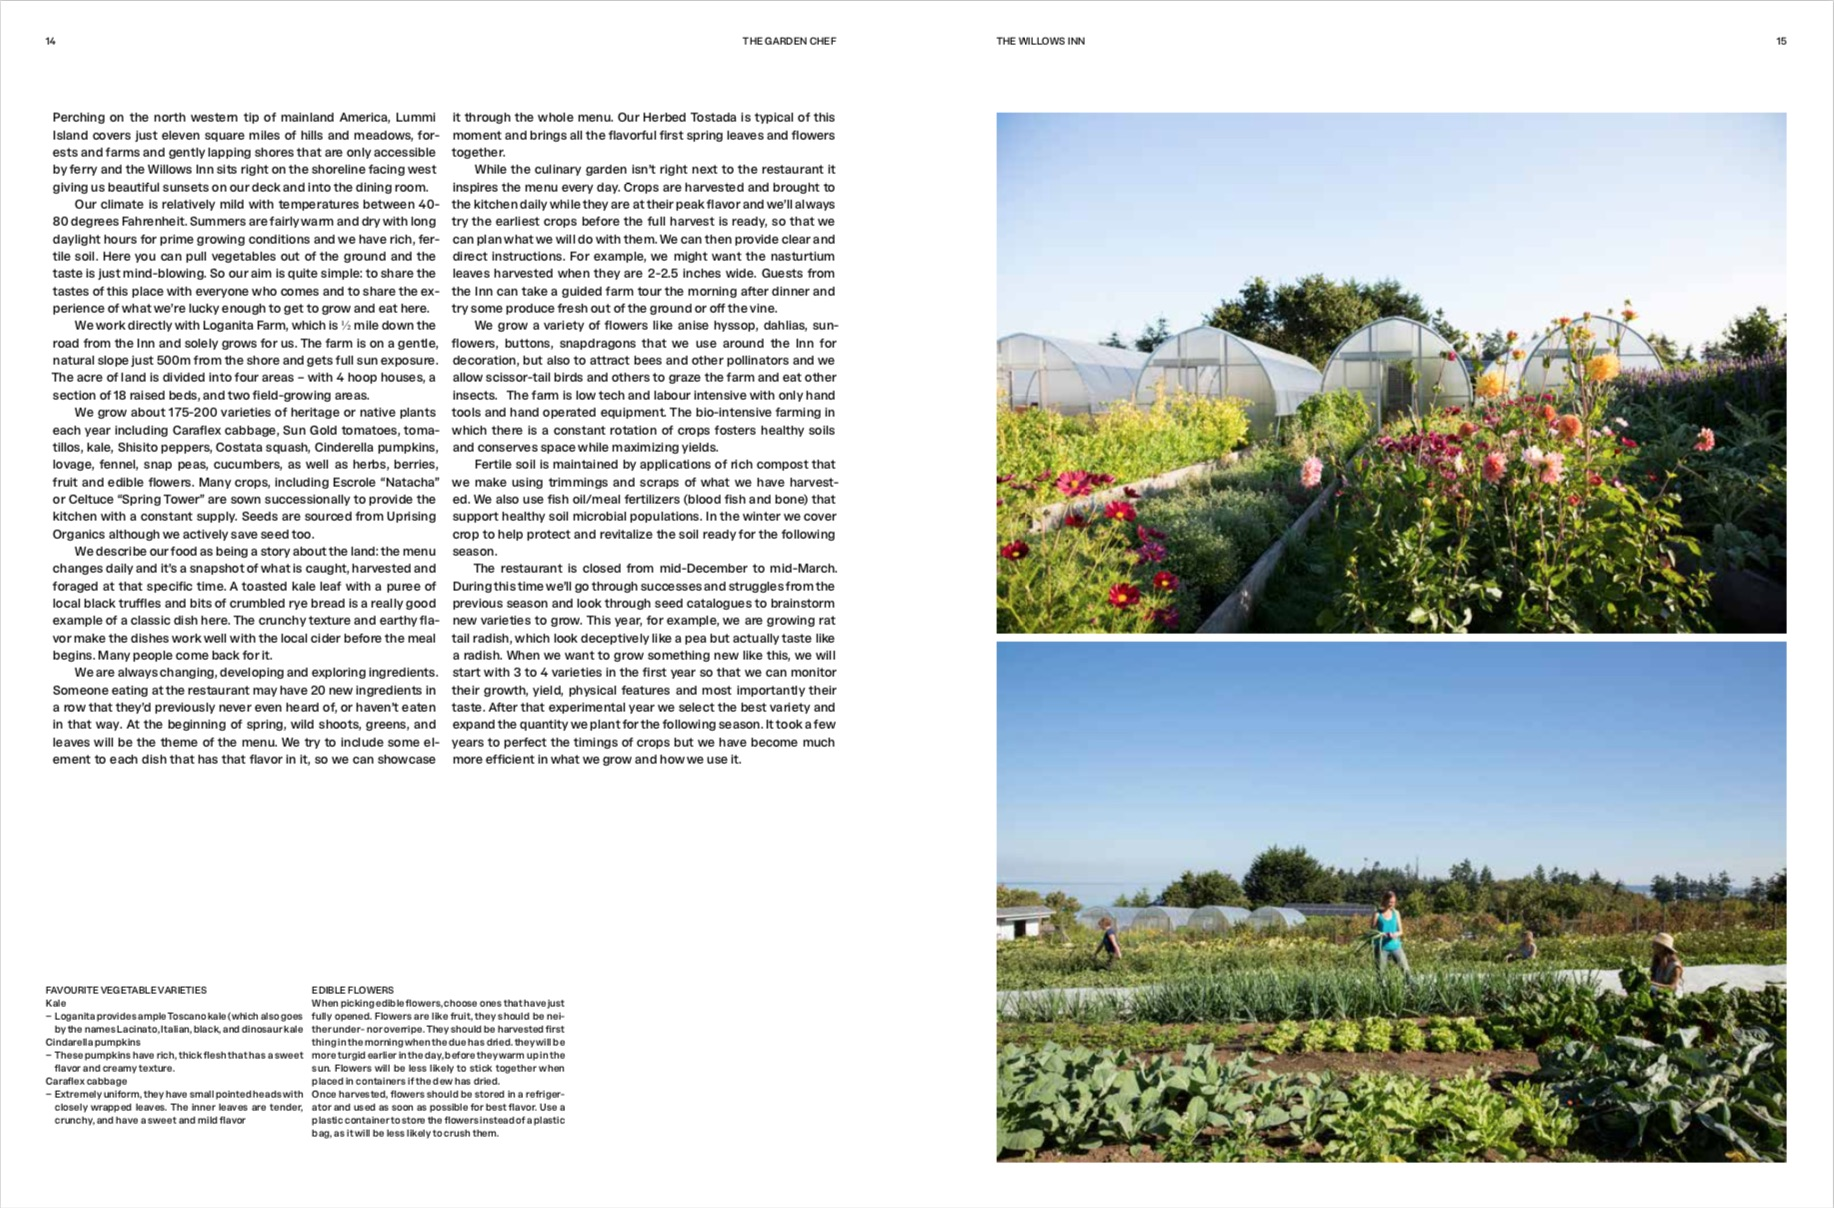 By Phaidon Editors from The Garden Chef: Recipes and Stories from Plant to Plate copyright Phaidon 2019